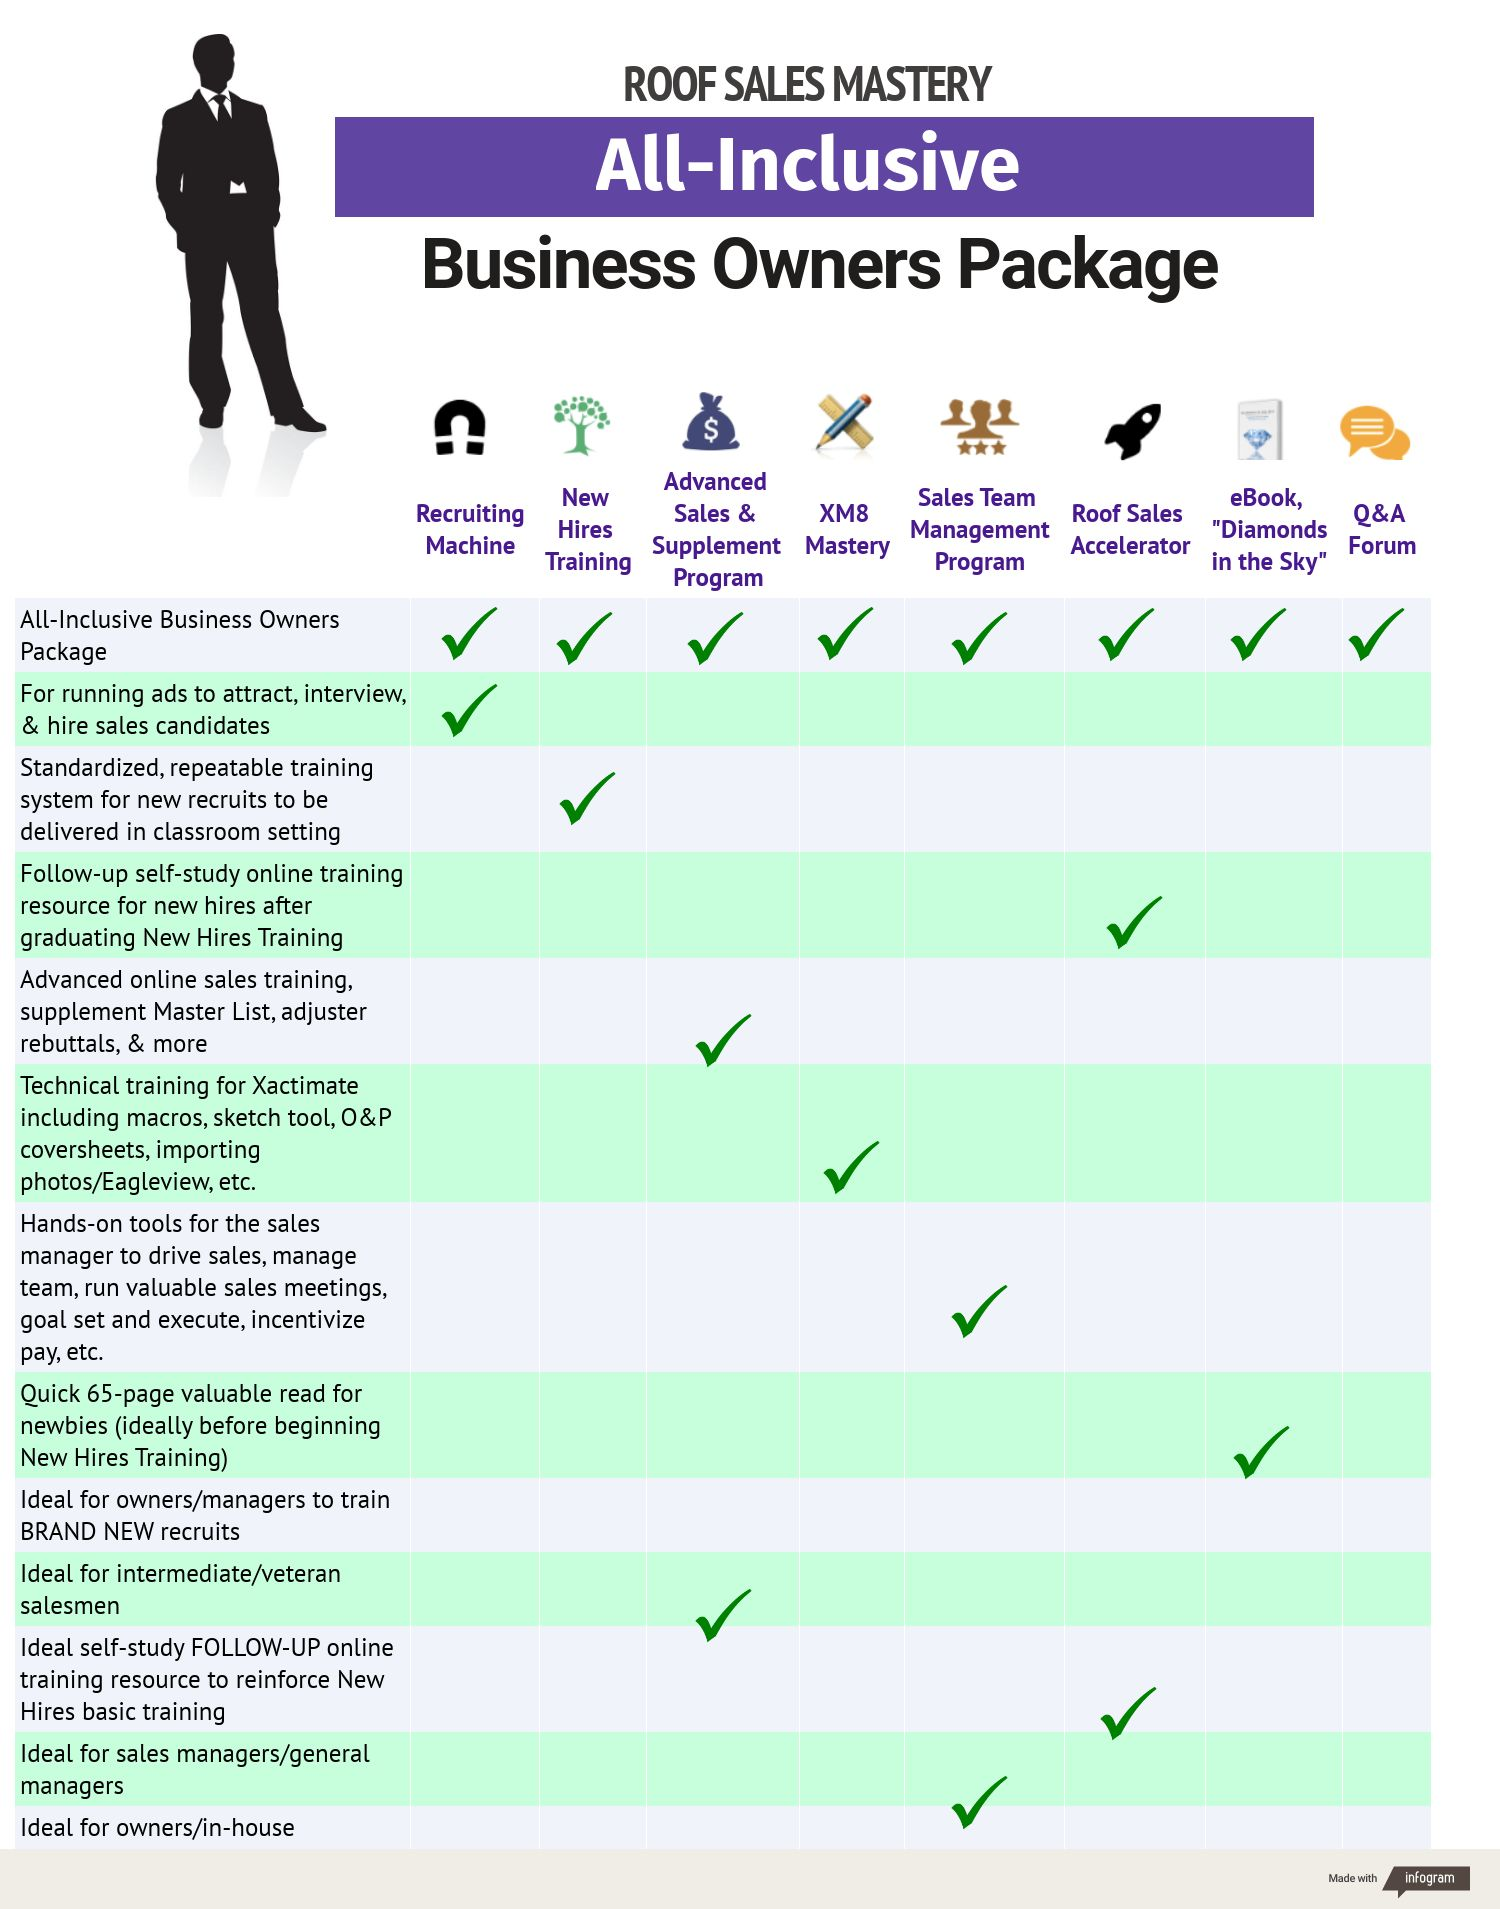 All-Inclusive Business Owner's Package -